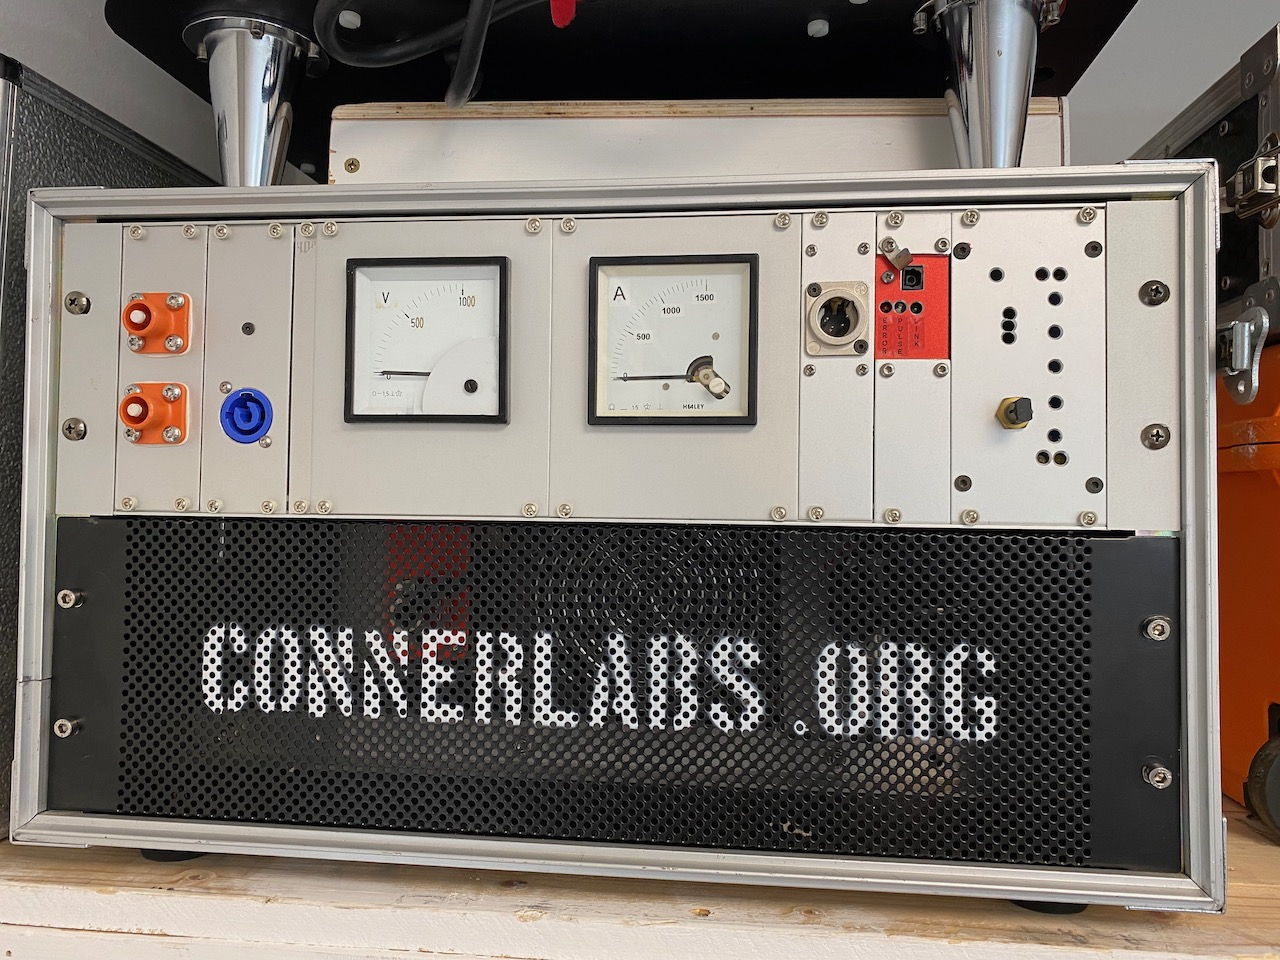 CONNERLABS